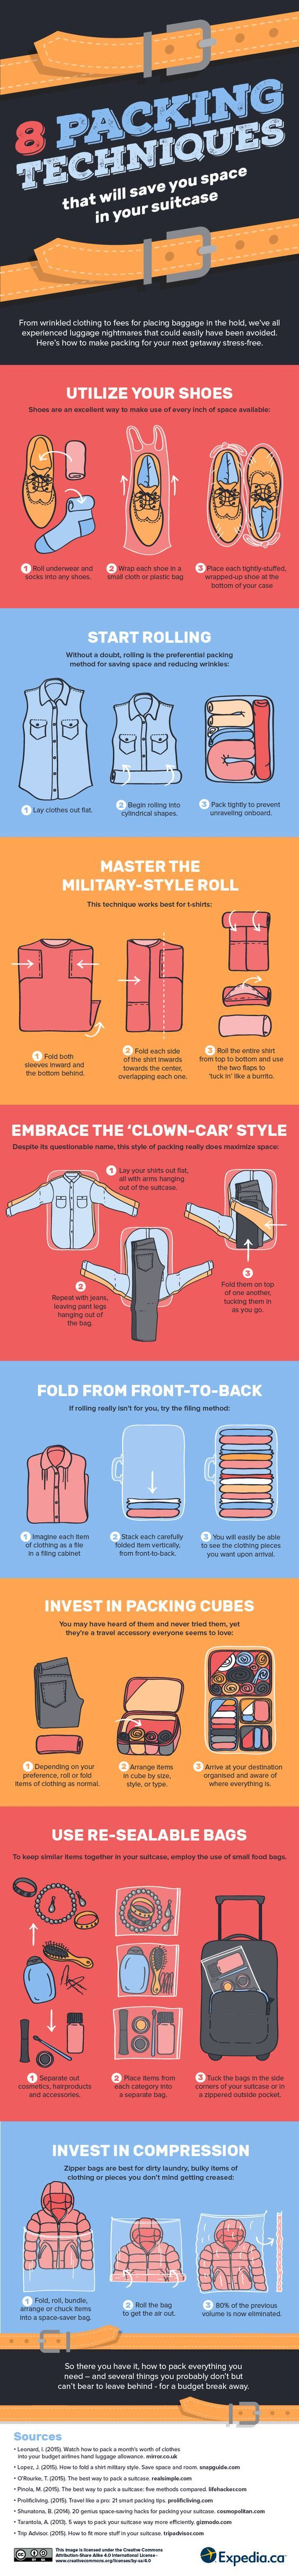 "TRAVEL TIPS - ""8 Packing Techniques That Will Save you Space in your Luggage"".  ""Bien organiser ses bagages pour gagner de la place""."